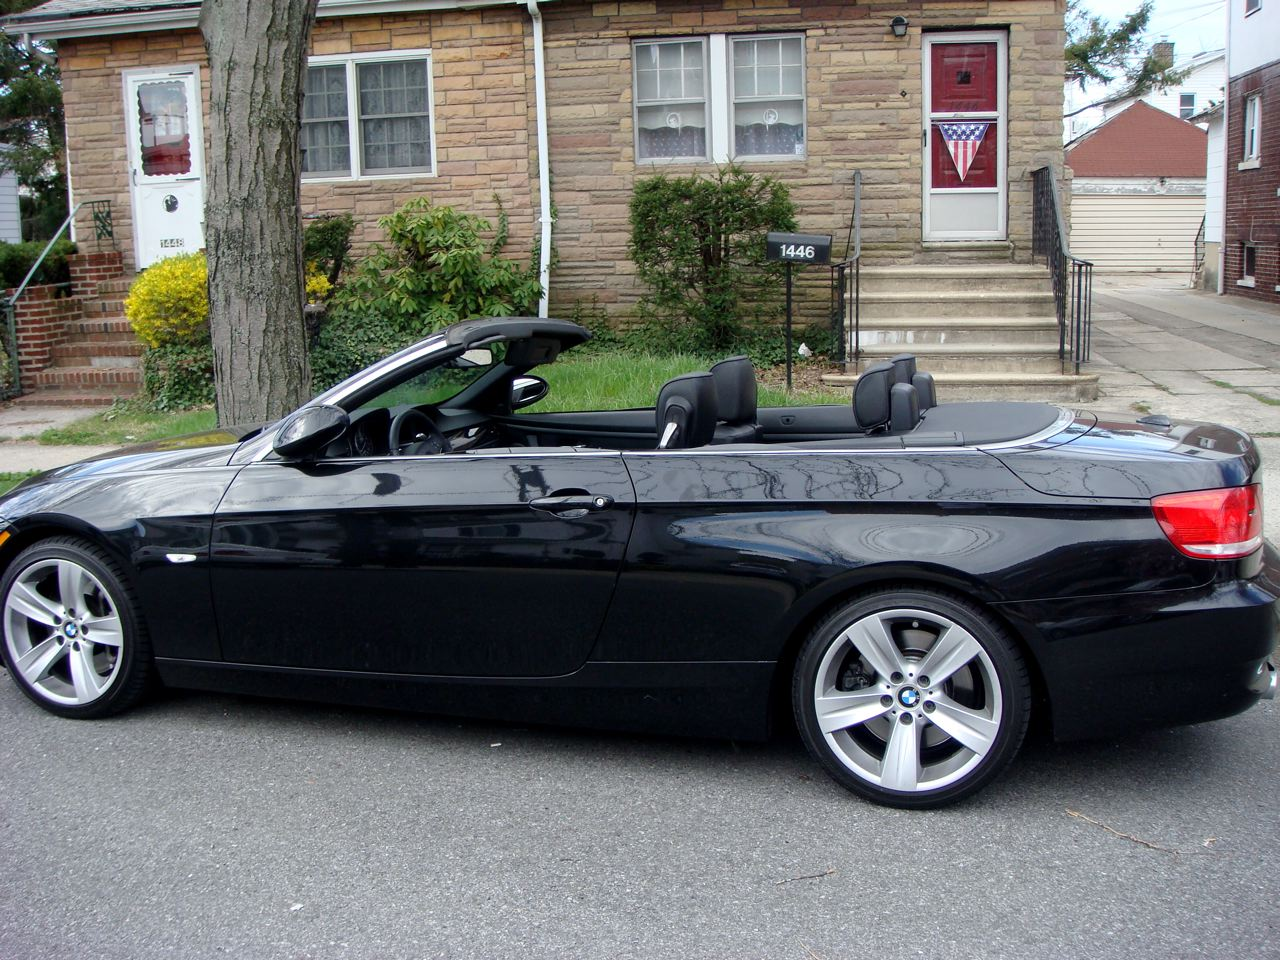 FS 2008 BMW 335i Convertible E93 Fully Loaded 50950